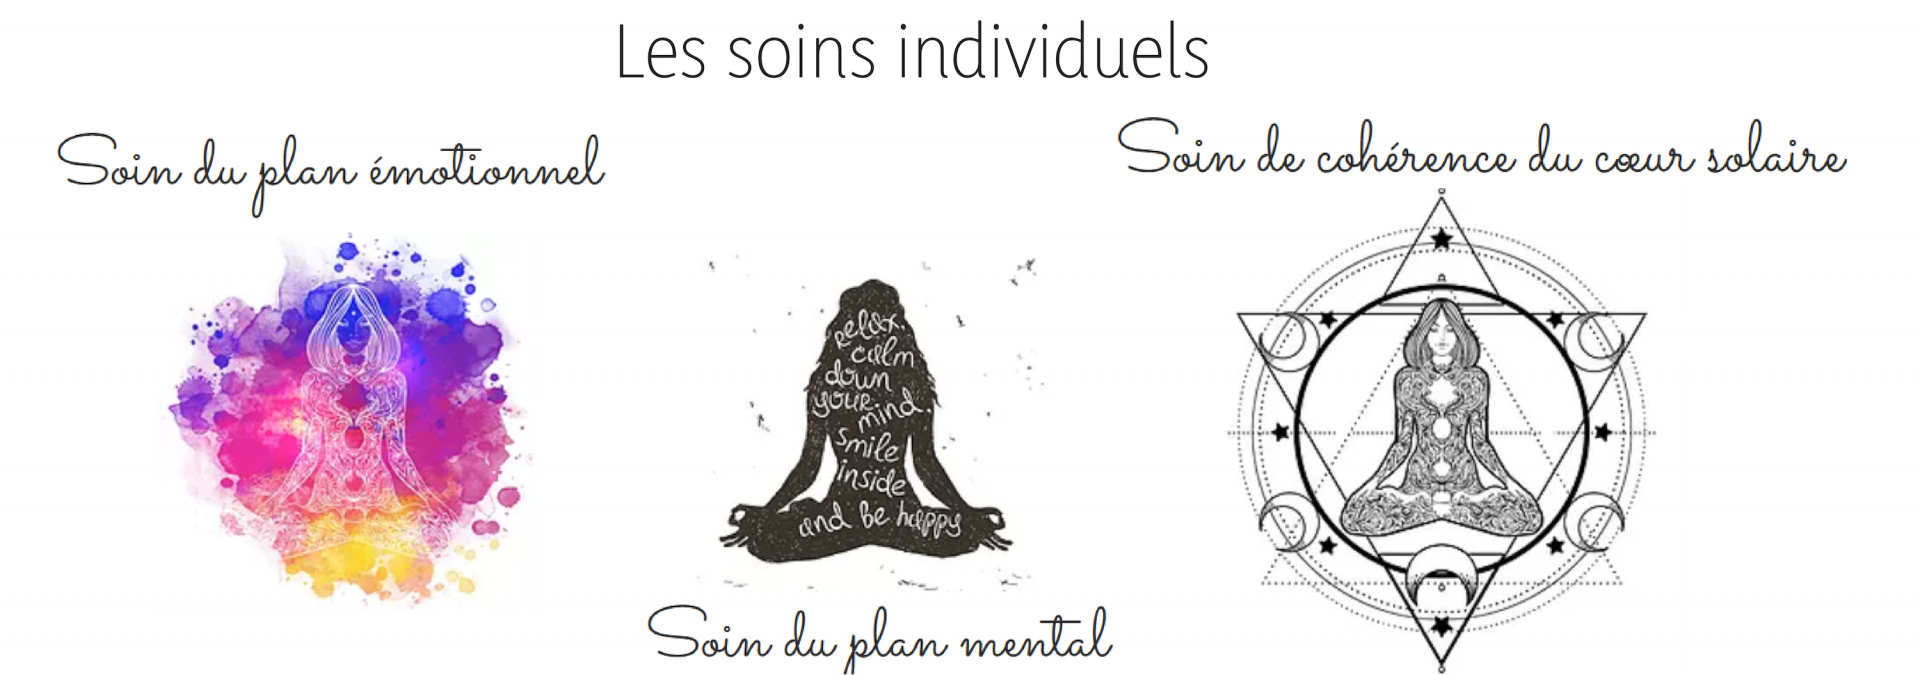 Les soins individuels